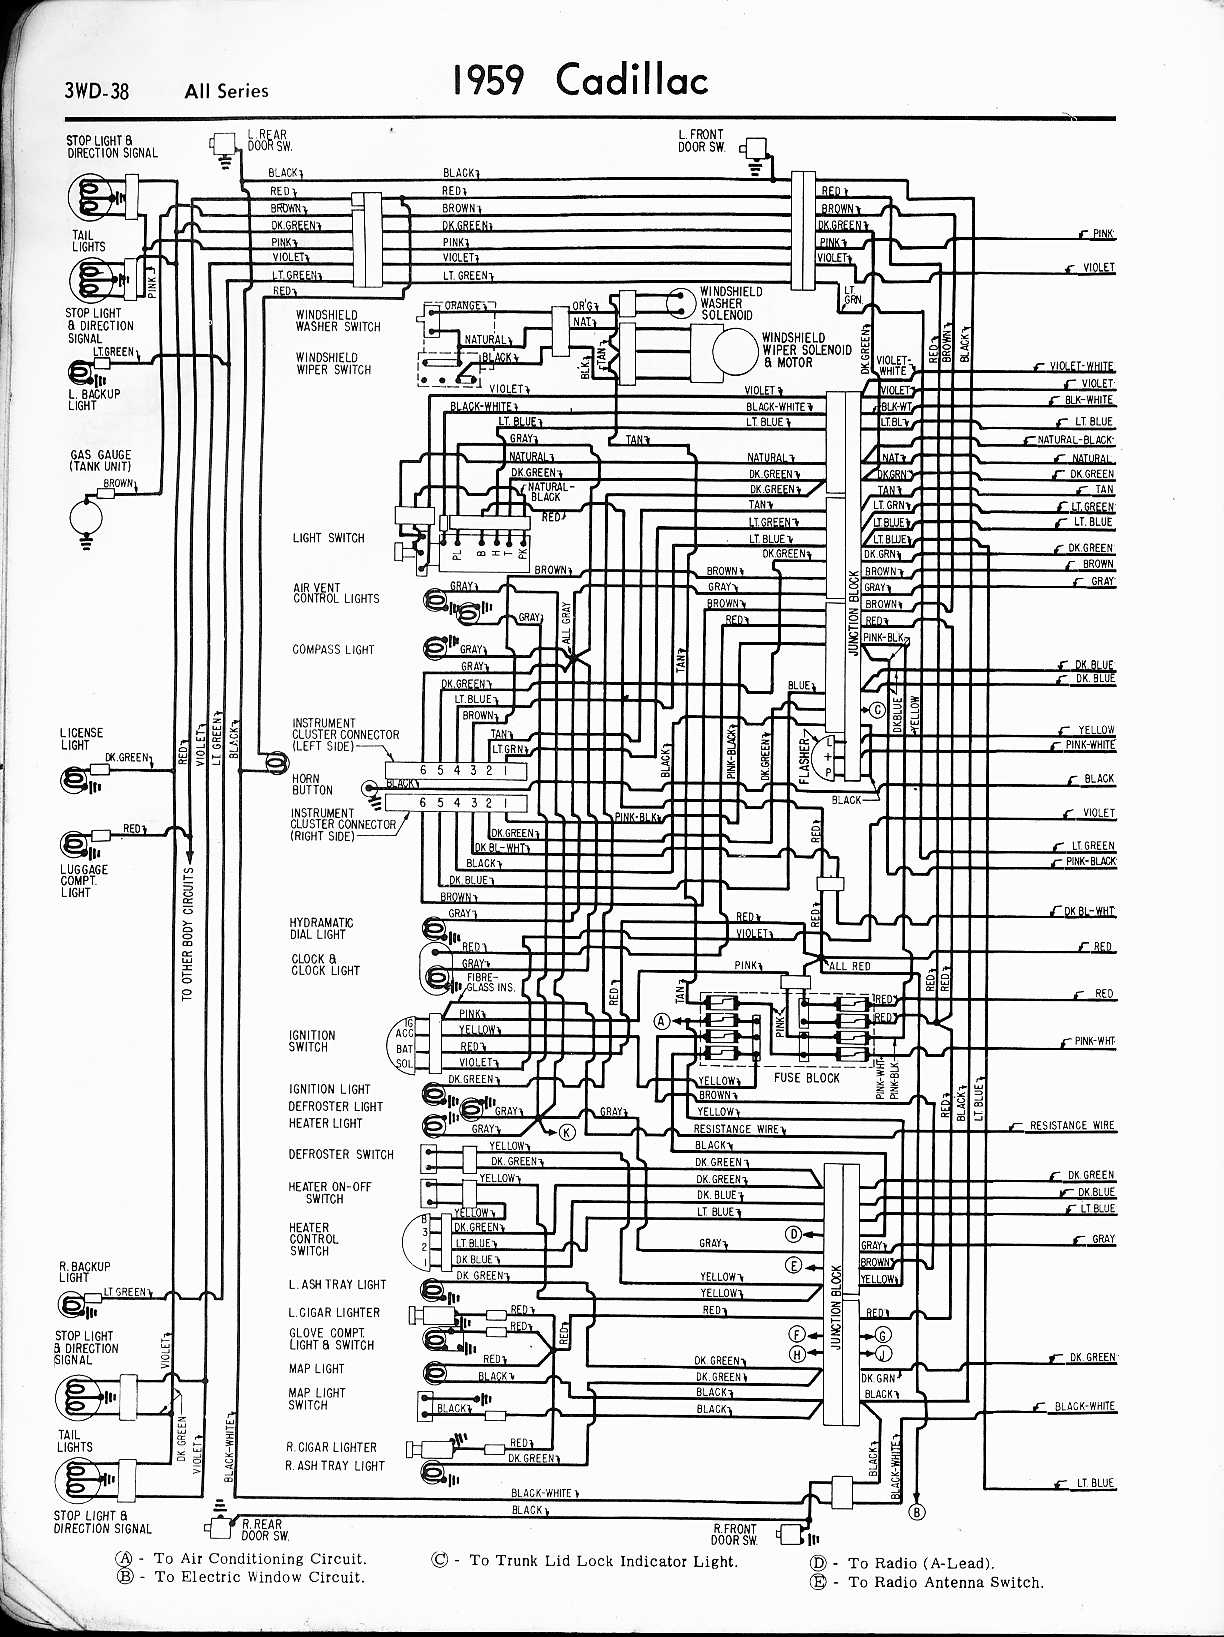 [TBQL_4184]  Cadillac Wiring Diagrams: 1957-1965 | 1966 Cadillac Alternator Wiring Diagram |  | The Old Car Manual Project